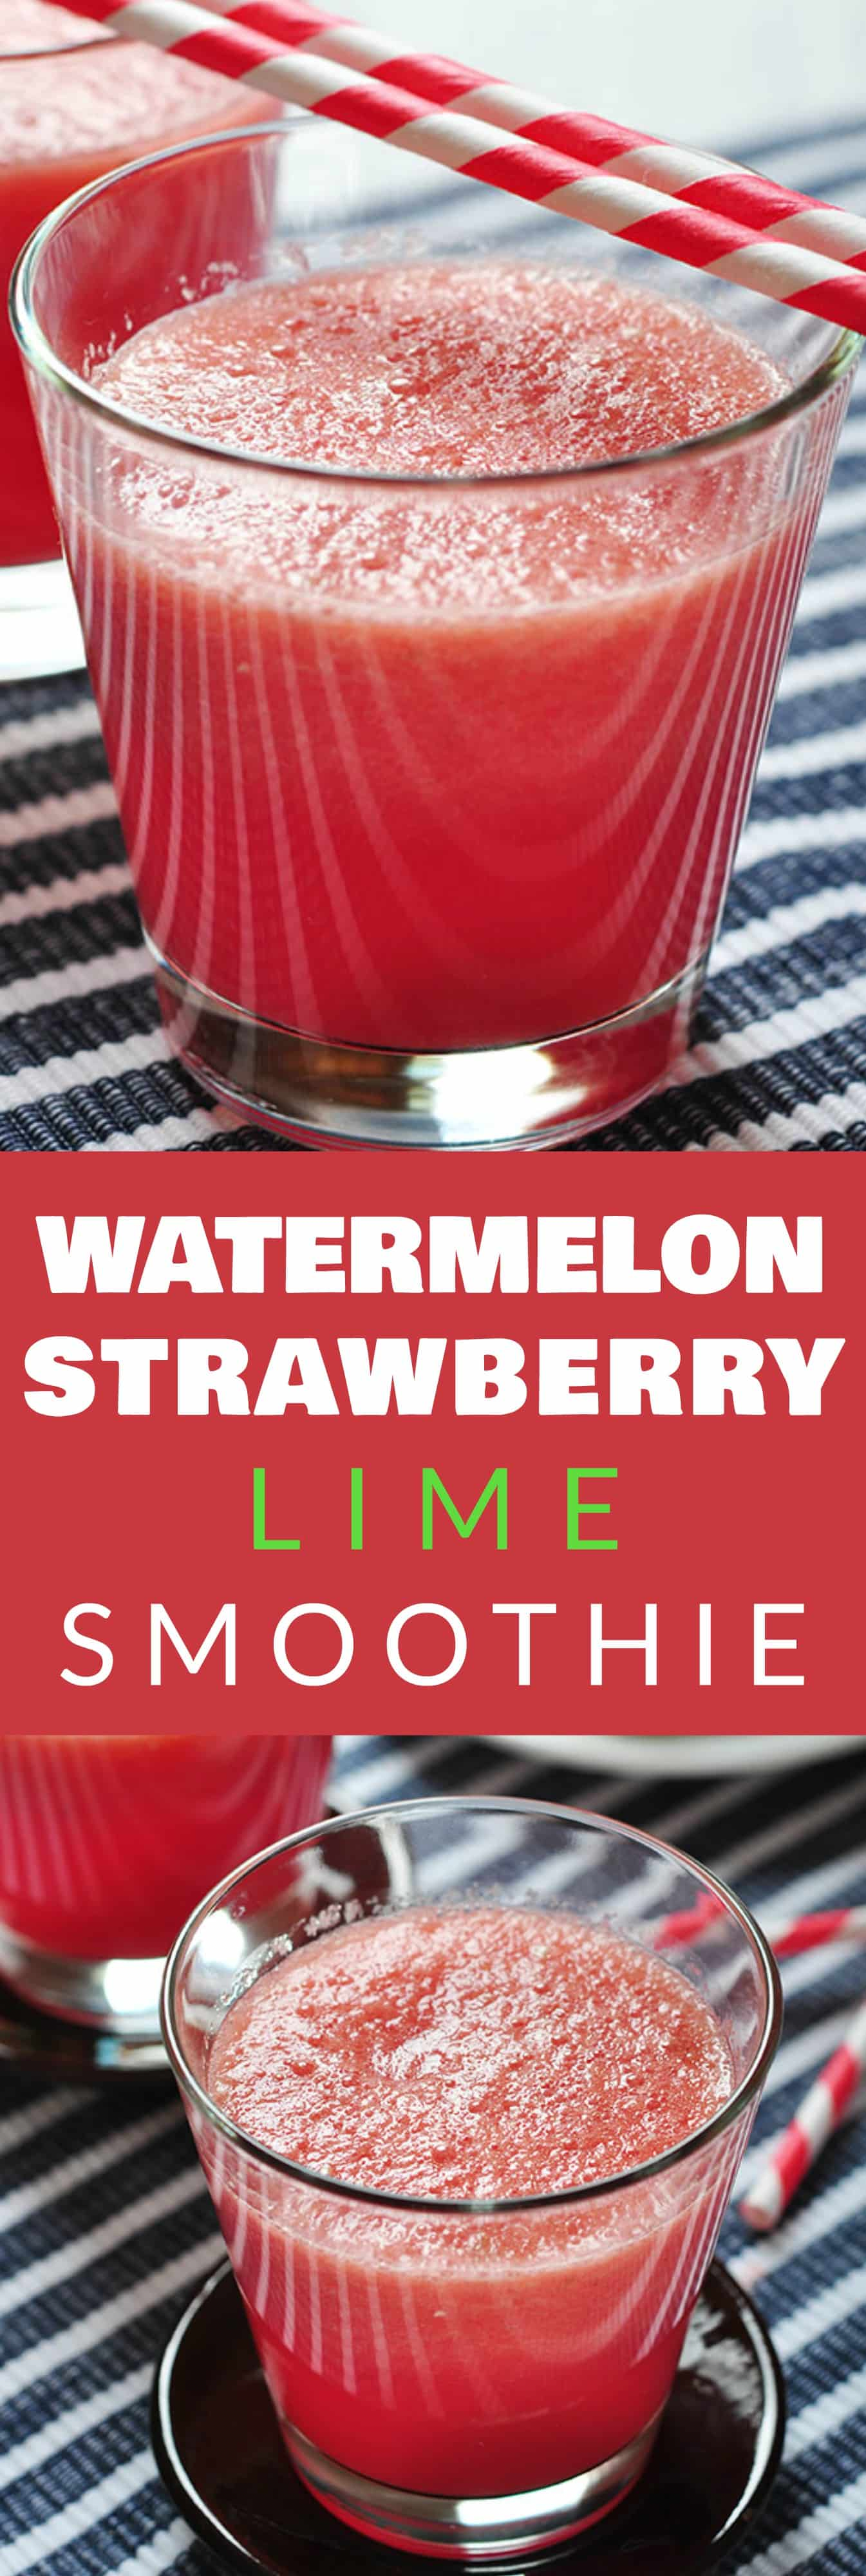 HEALTHY Watermelon Strawberry Smoothie recipe that is perfect for the SUMMER!  All you have to do is throw all the ingredients in the blender for this easy recipe.  You can also use frozen fruit if watermelon is out of season.  This smoothie is healthy, low calorie (doesn't use milk) and great for weightloss.